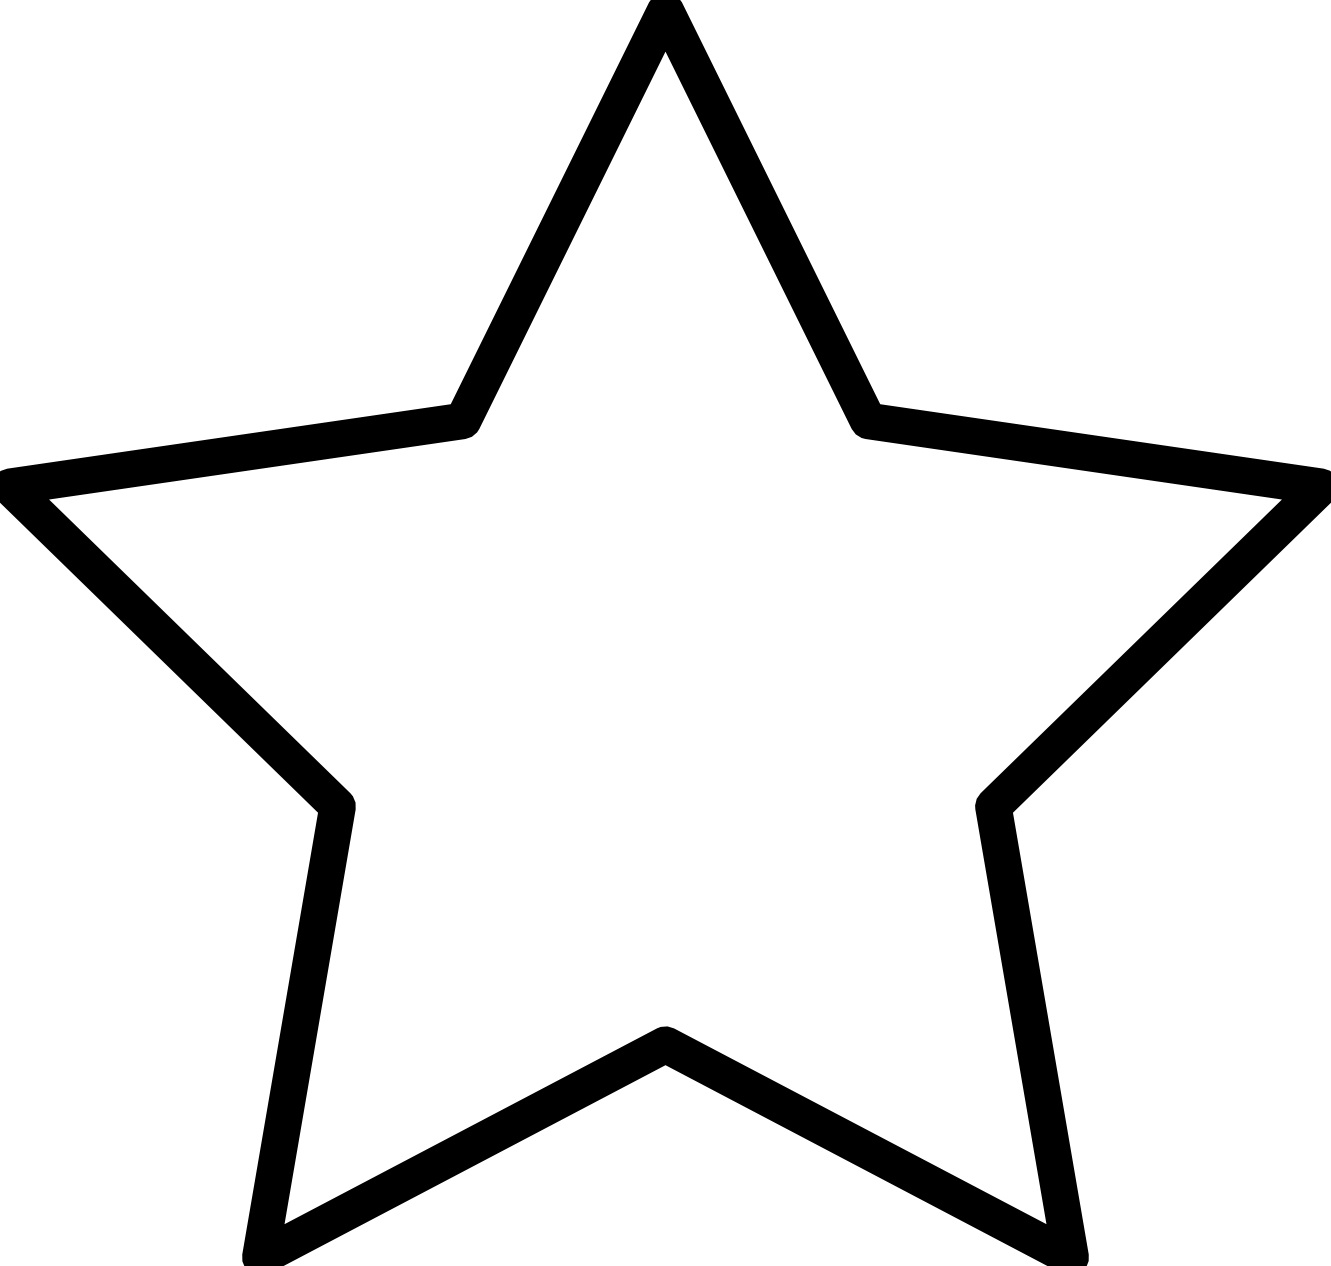 colouring pages of stars 6 star coloring pages free premium templates pages stars of colouring